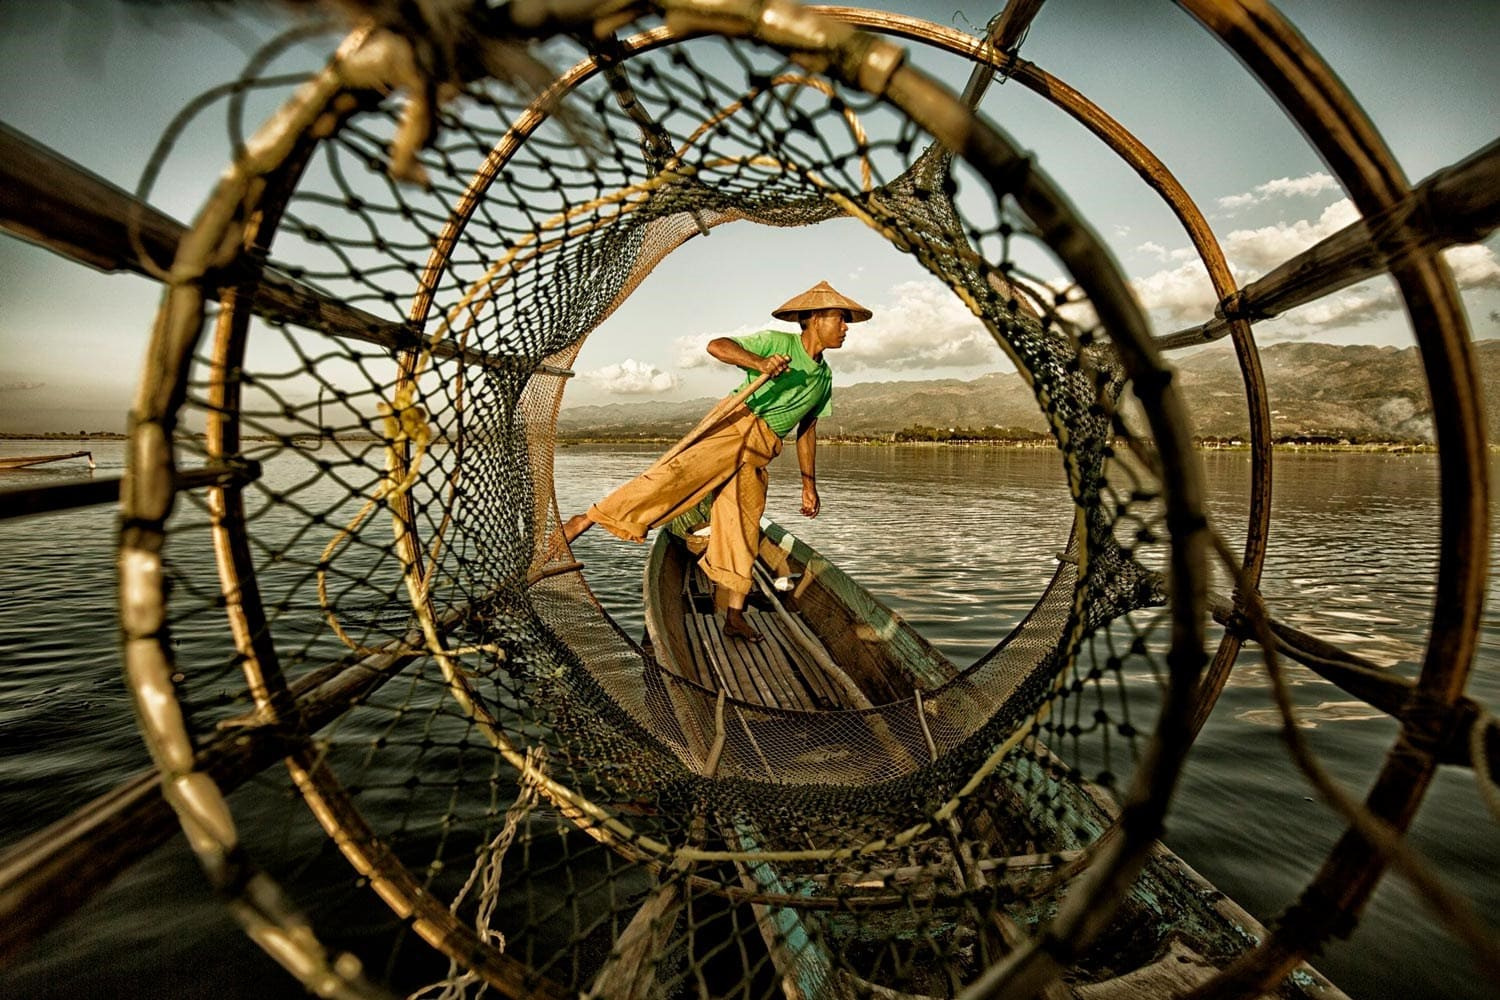 original_01-Fisherman-at-Inle-Lake-by-Yinzhi-Pan.jpg